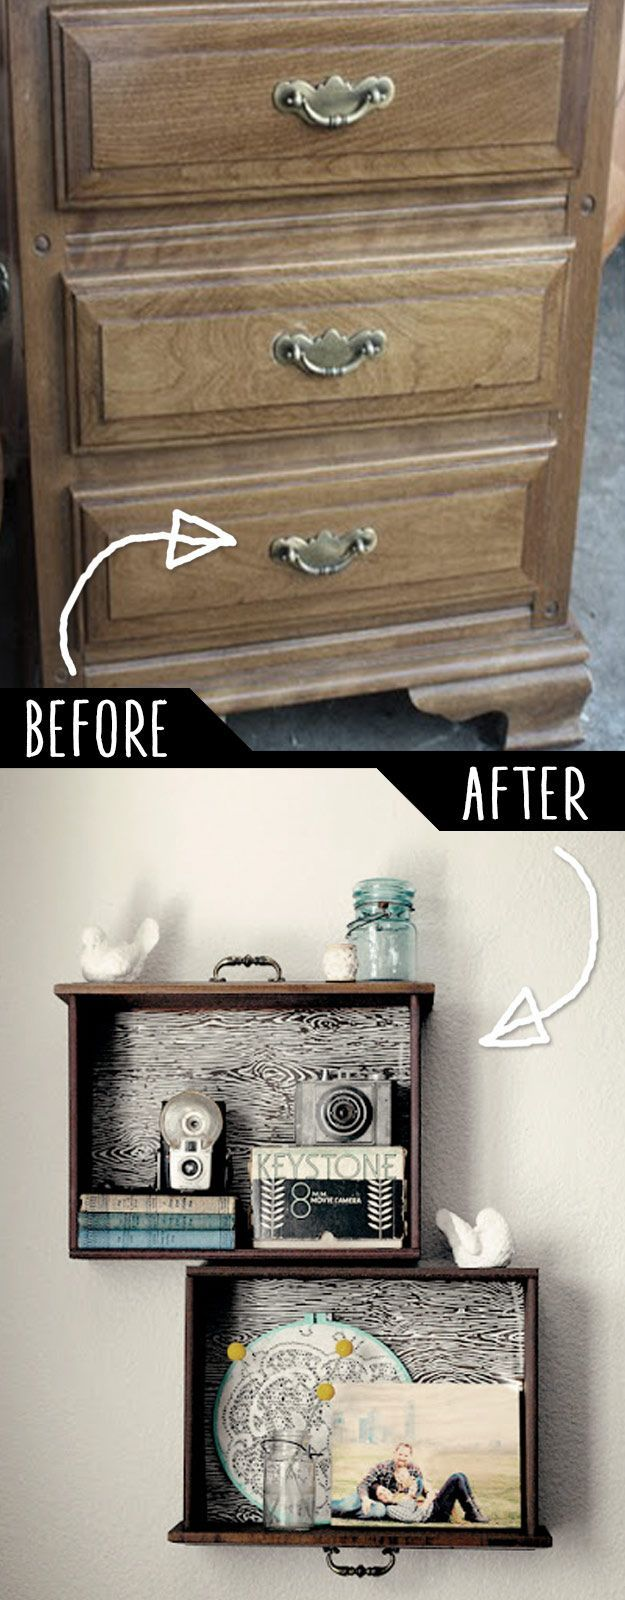 top 25 best cheap bedroom ideas ideas on pinterest college 39 clever diy furniture hacks cheap home decorhome decor ideascheap bedroom